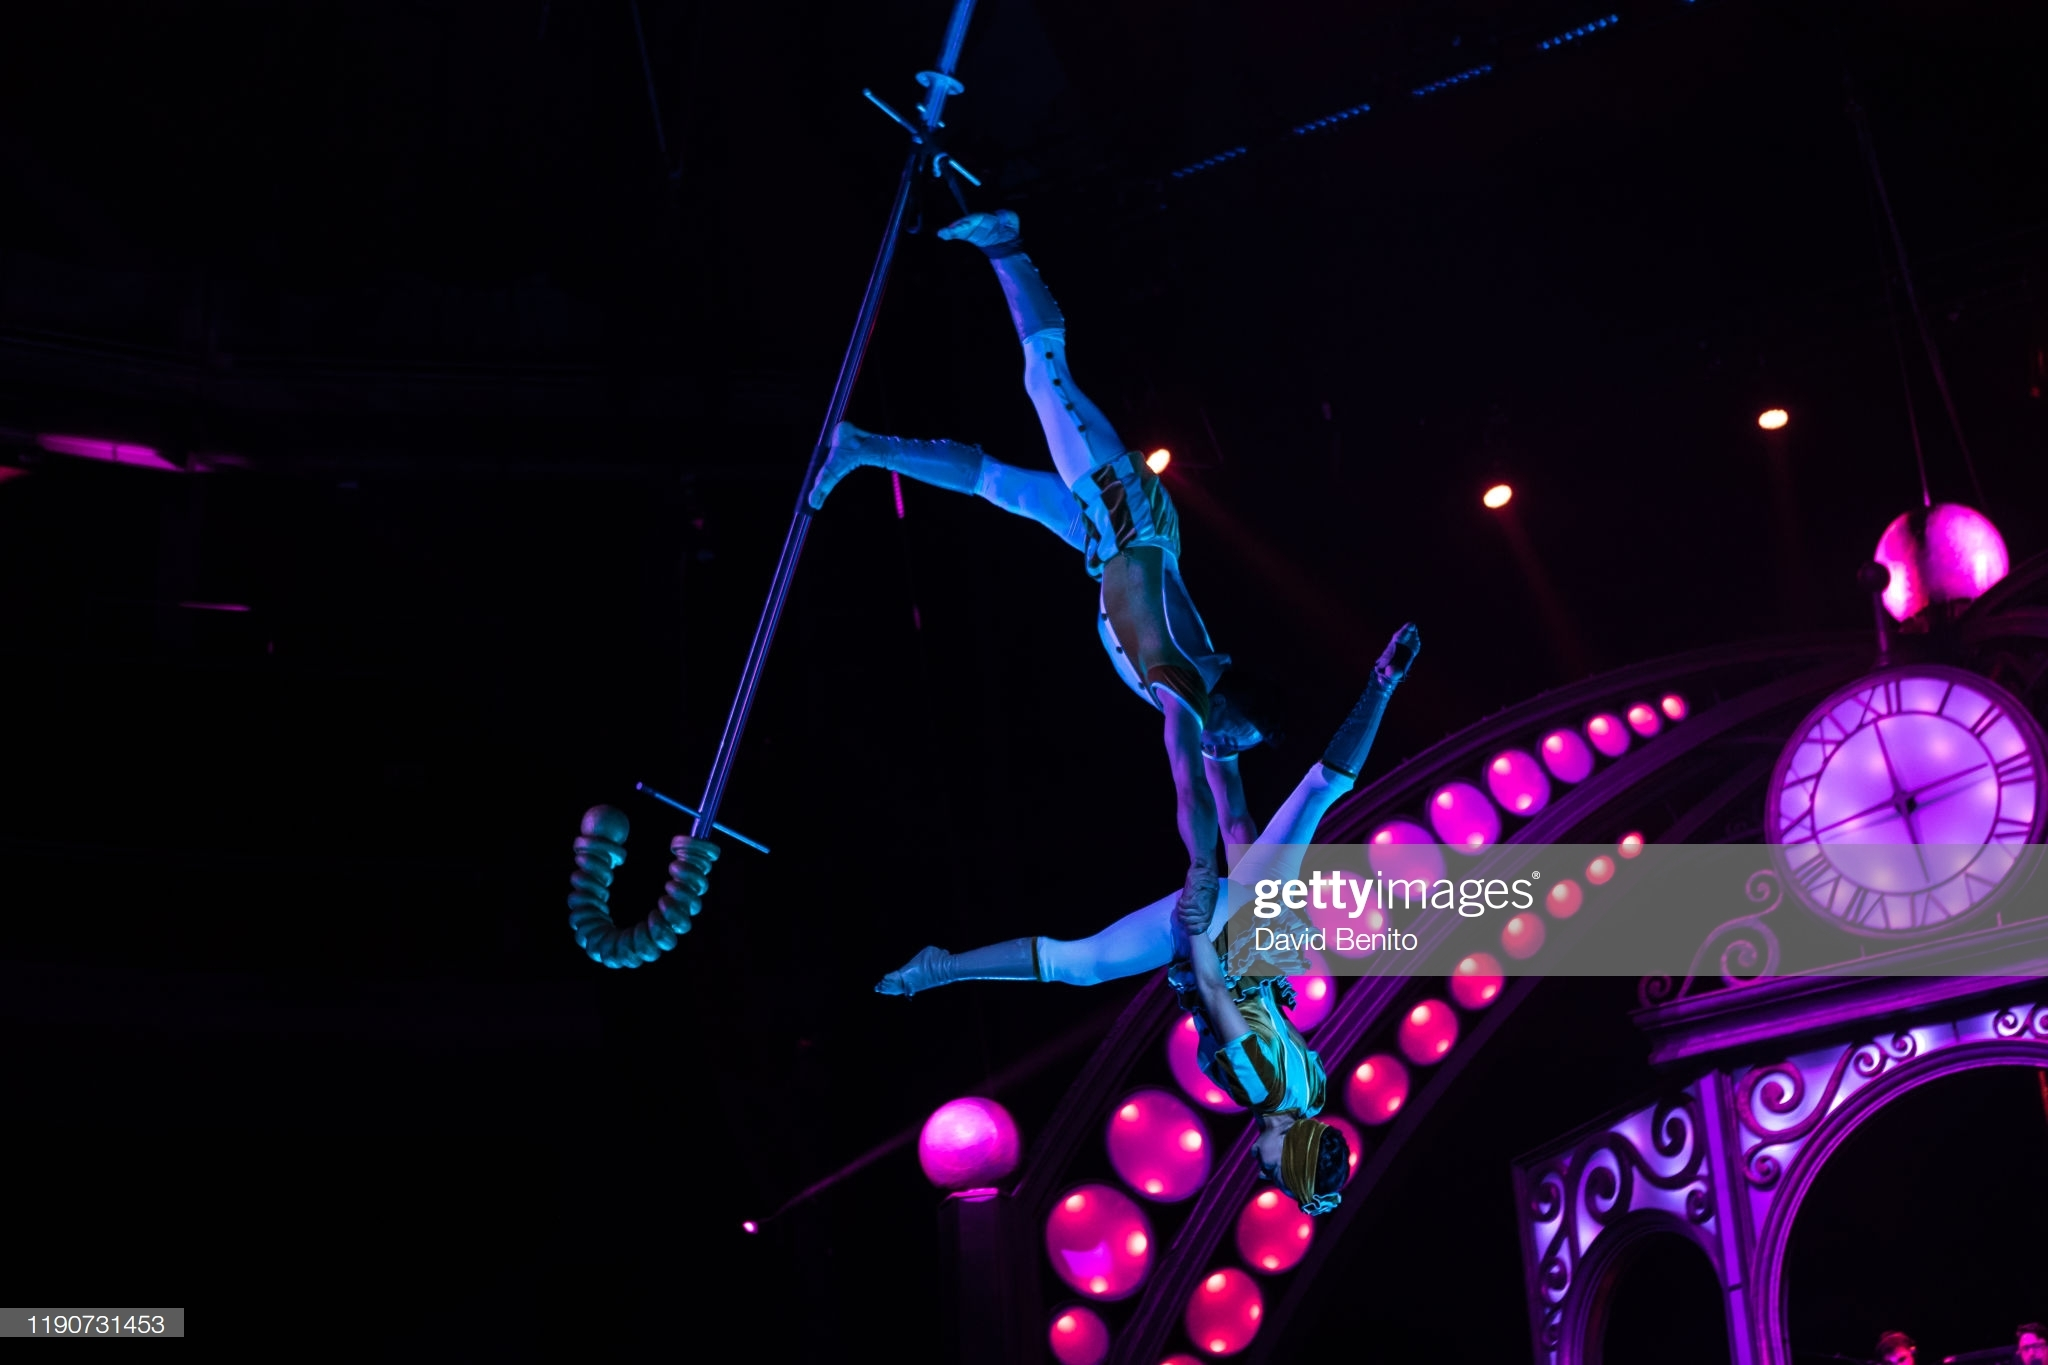 gettyimages-1190731453-2048x2048